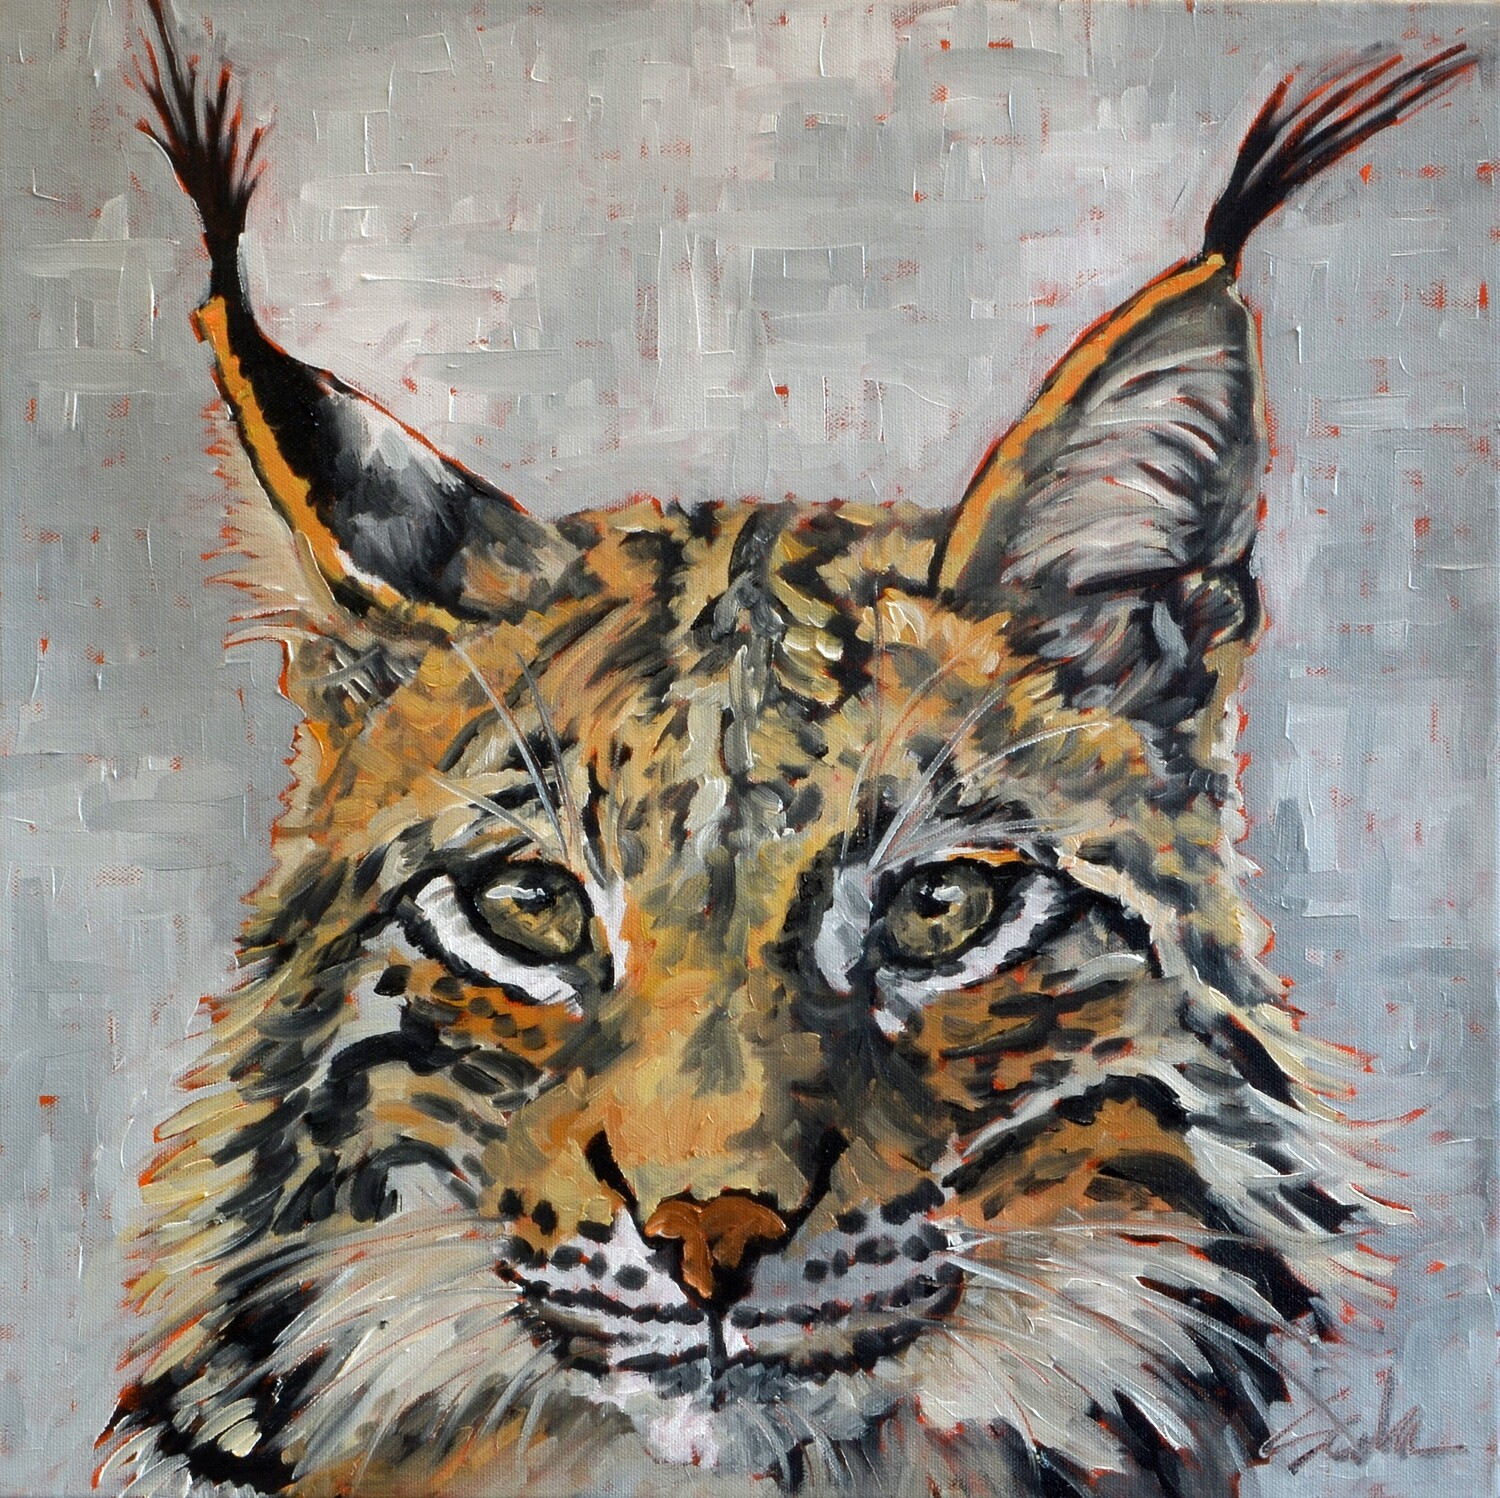 Lynx, oil on canvas, 18x18, SOLD